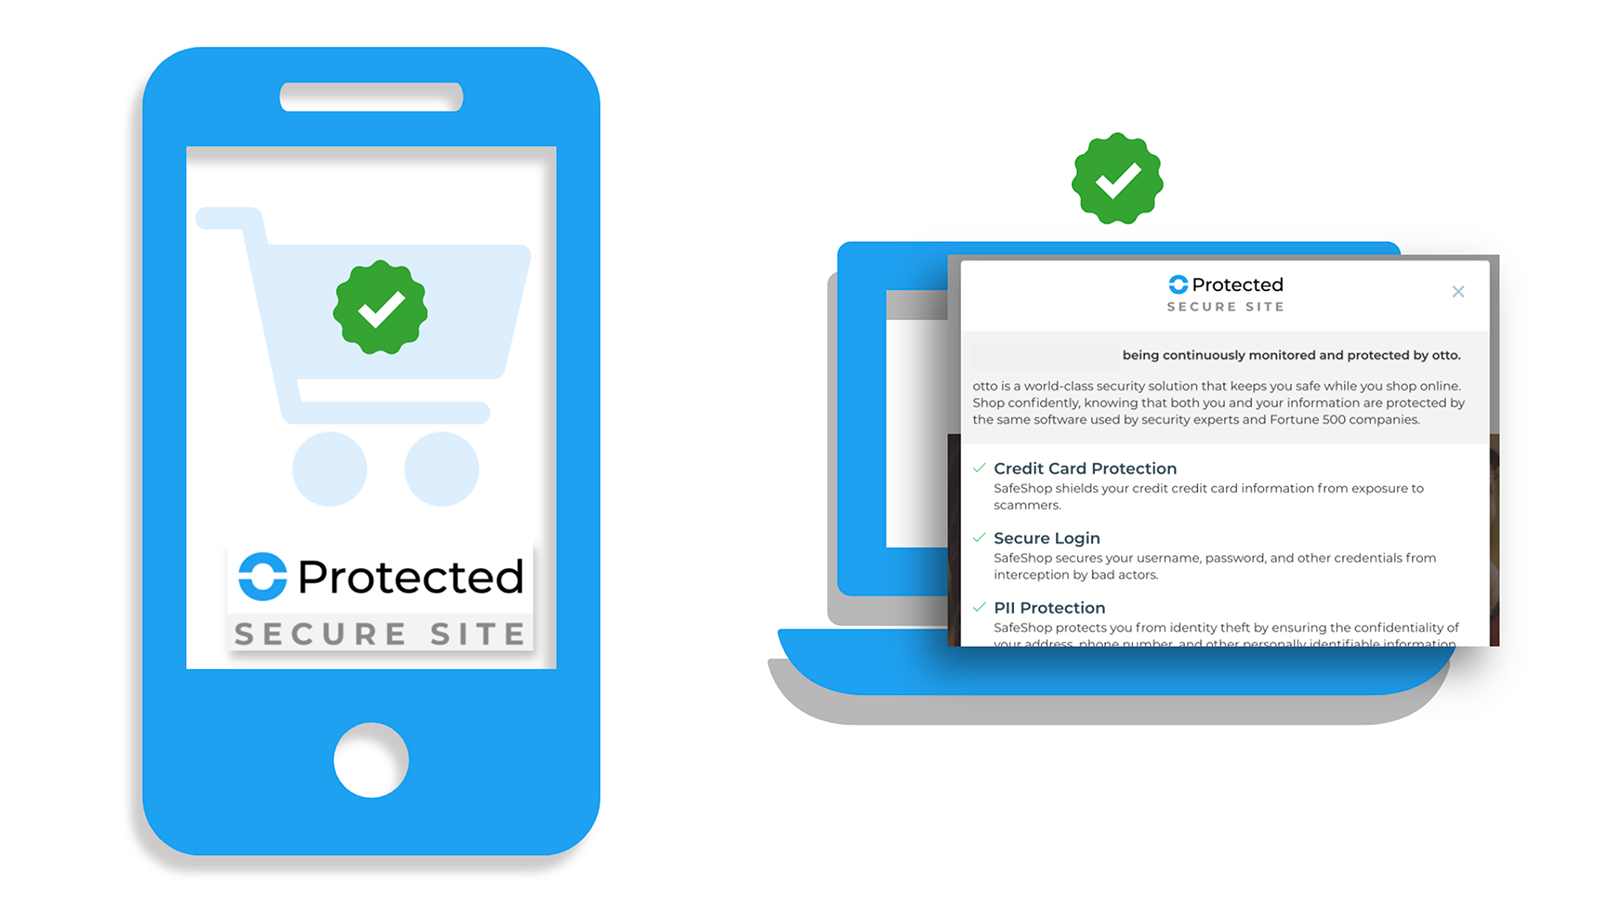 otto protects your site 24/7. Security made easy and free!